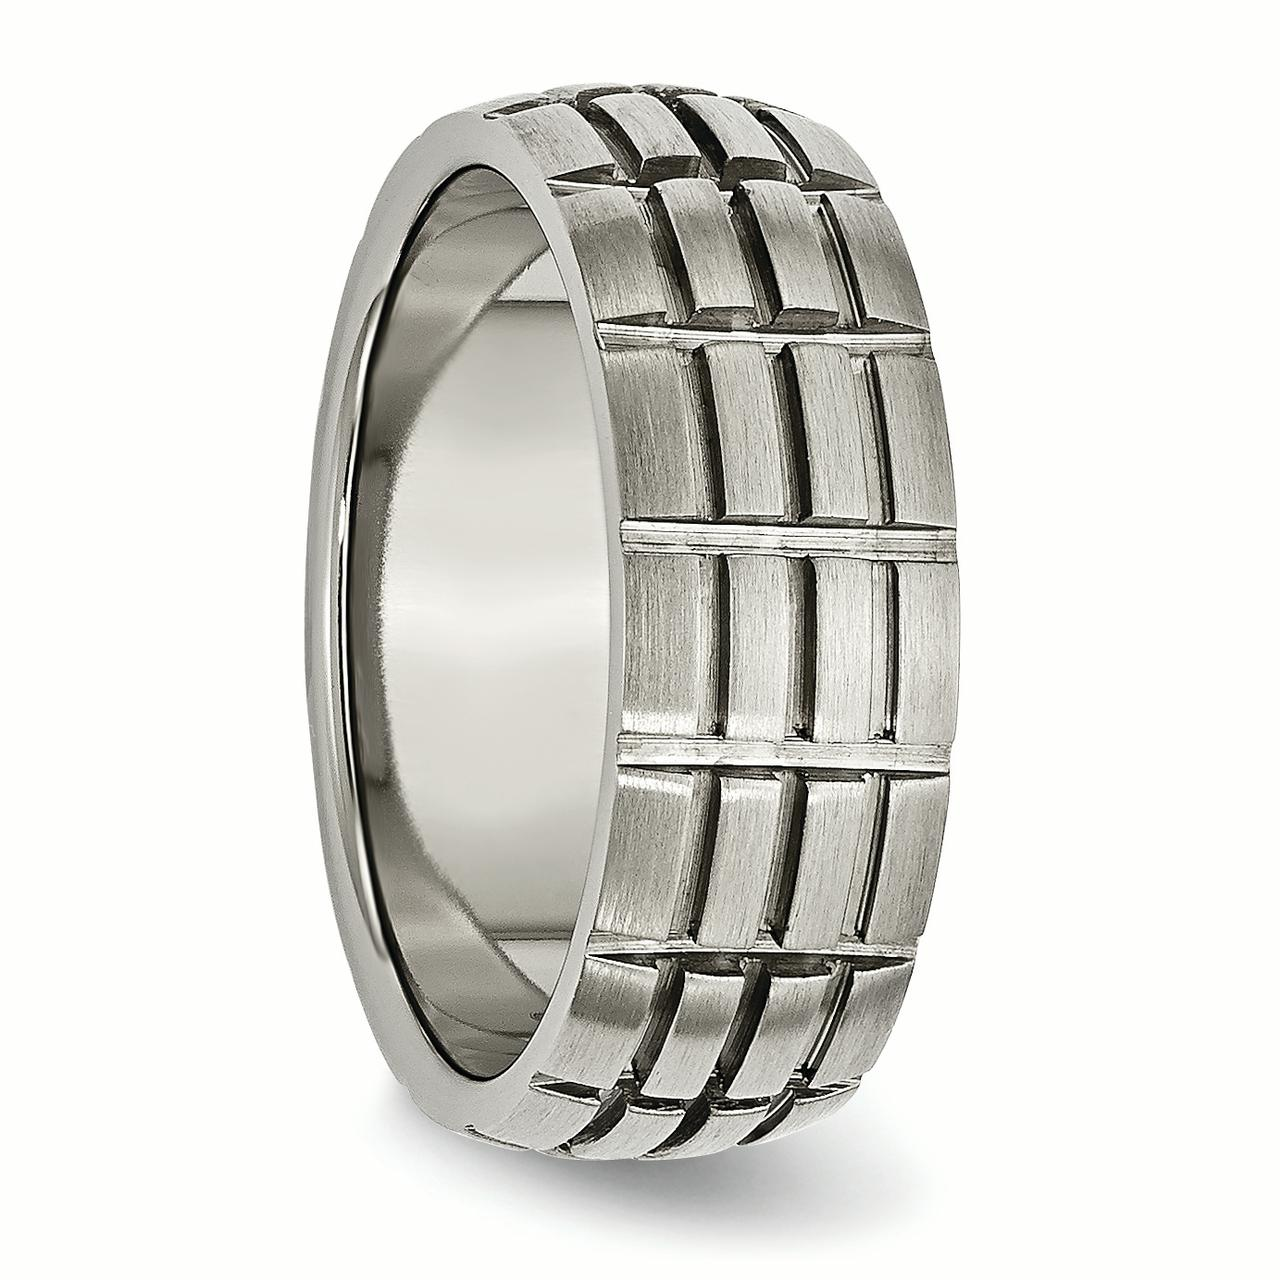 Titanium Notched Grooved 8mm Wedding Ring Band Size 11.00 Fashion Jewelry Gifts For Women For Her - image 4 of 6